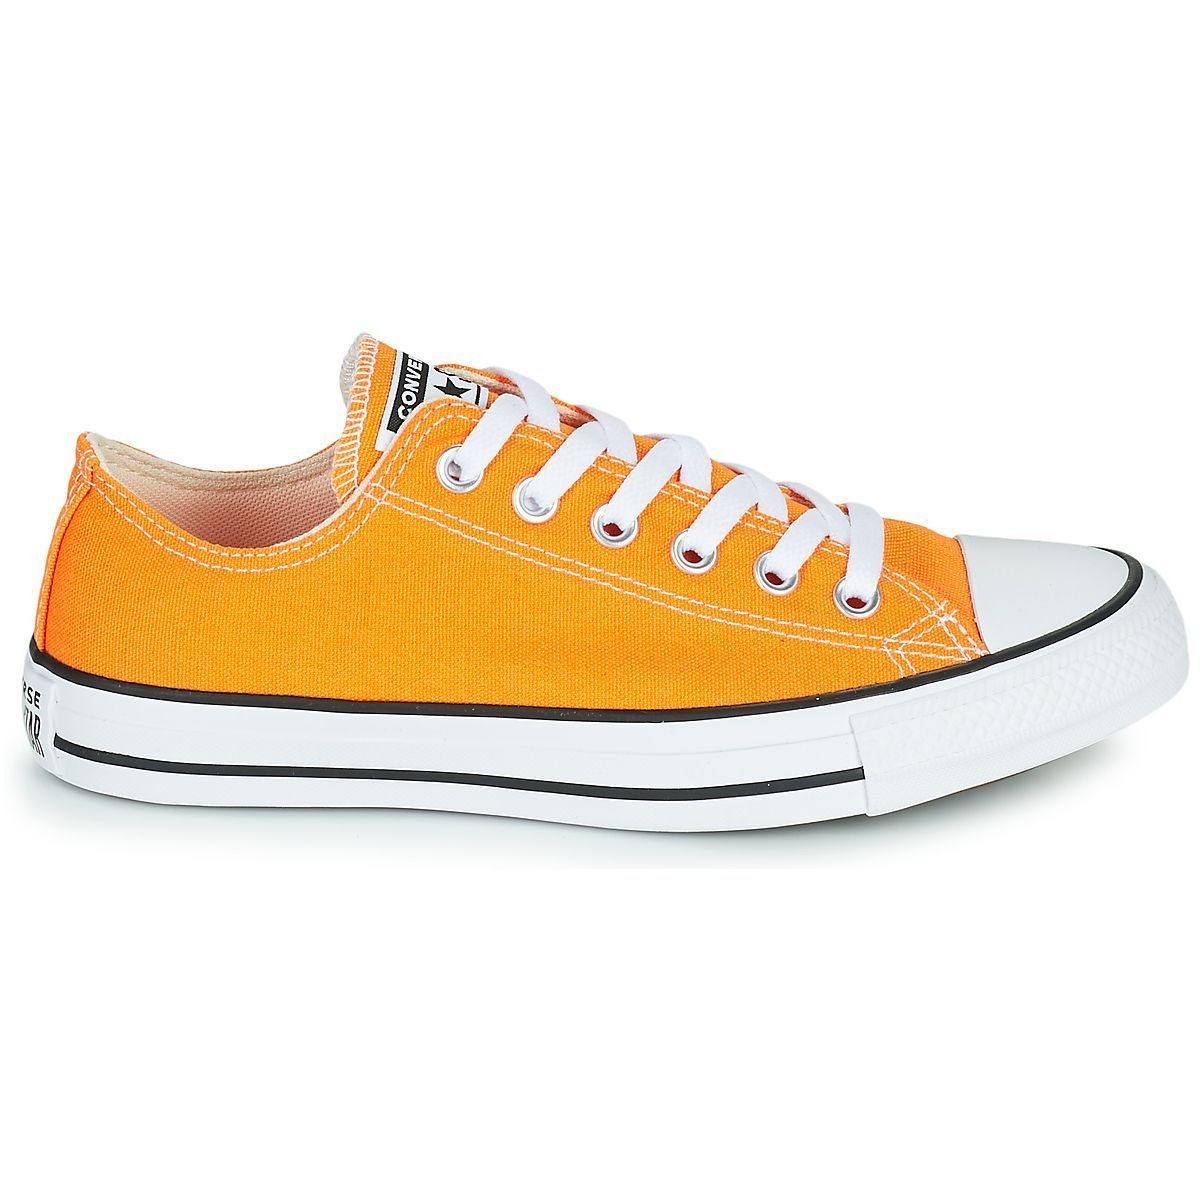 GIZEH CHUCK TAYLOR ALL STAR - OX:ORANGE/TEXTILE/TEXTILE/CAOUTCHOUC/Orange